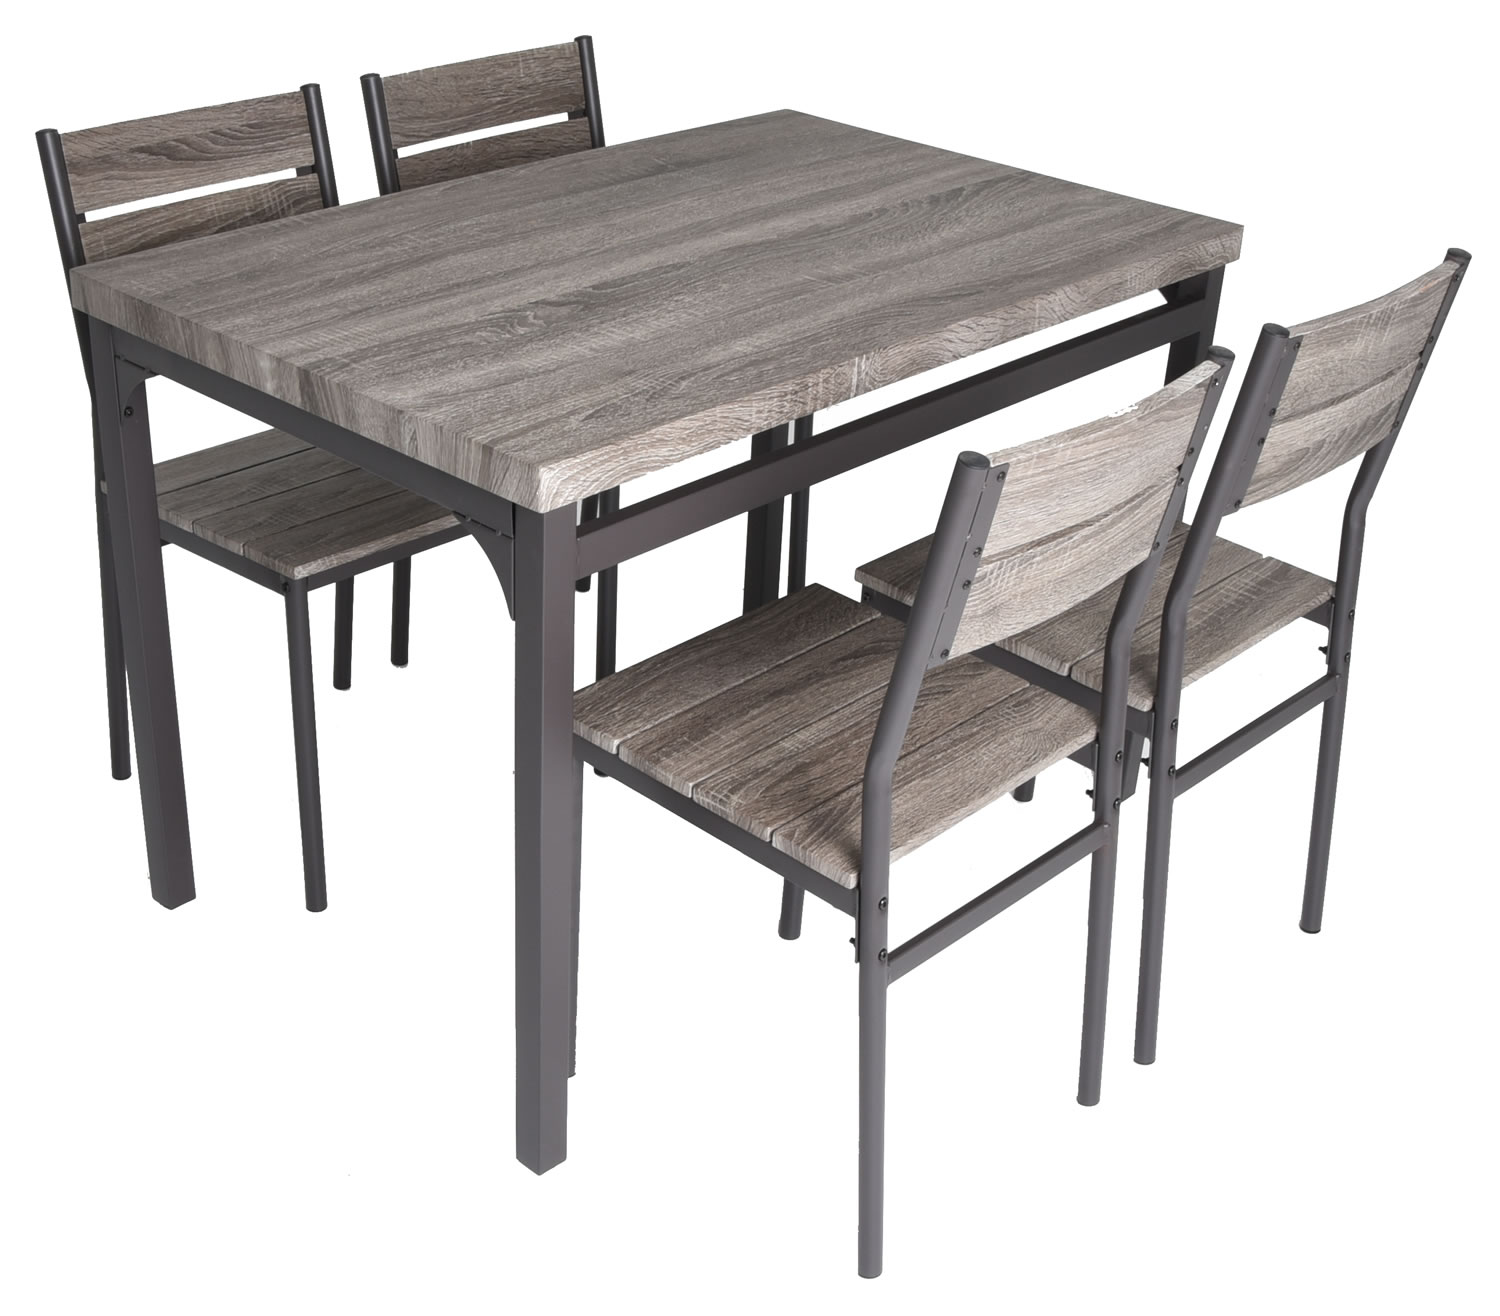 Details about Zenvida 5 Piece Dining Set Rustic Grey Wooden Kitchen Table  and 4 Chairs